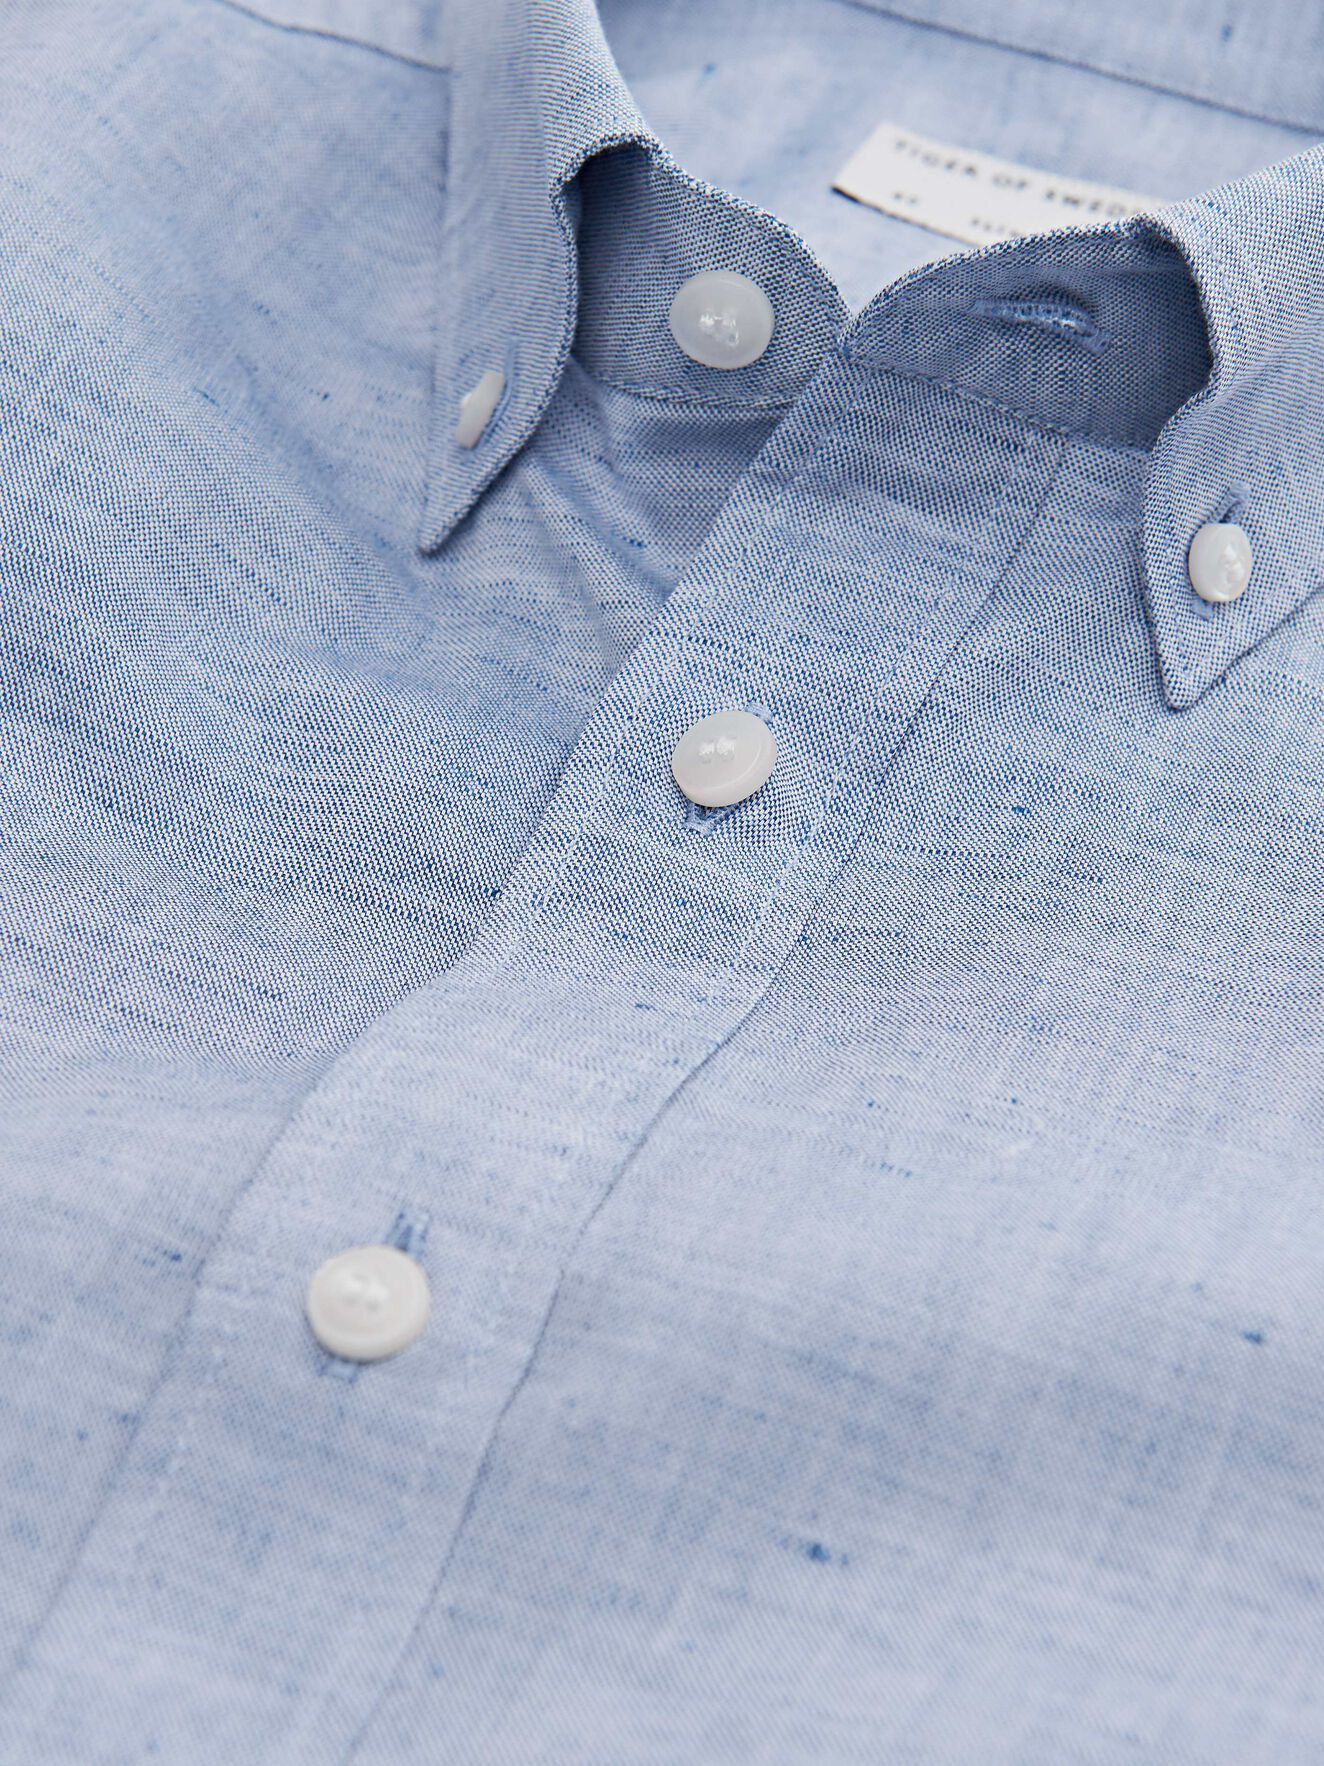 Fenald Shirt in Light blue from Tiger of Sweden